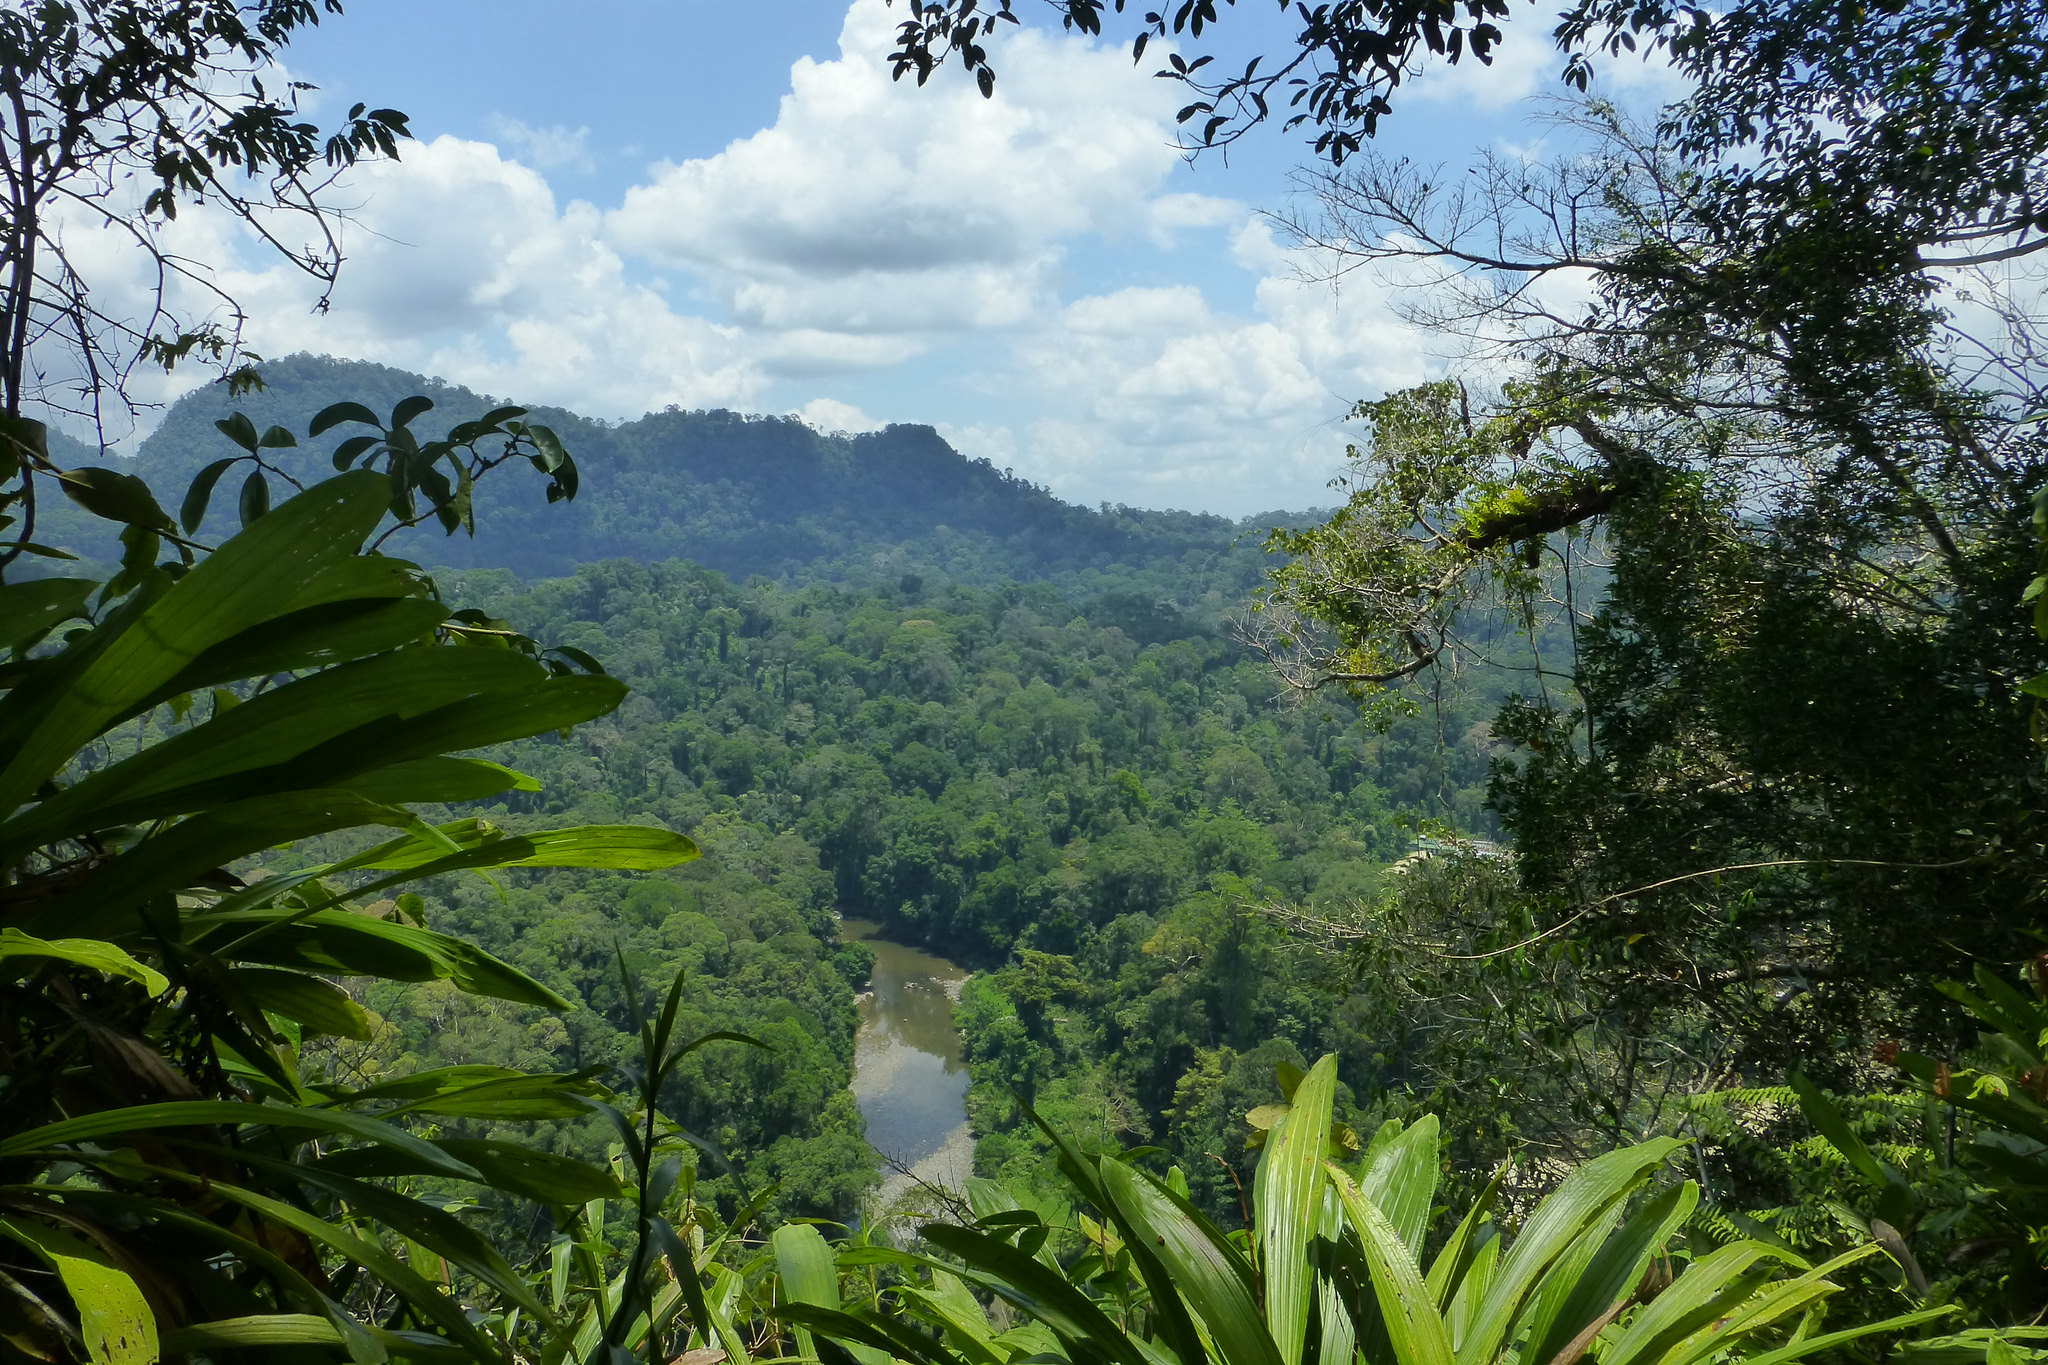 A sunny view over the jungle in Borneo, Indonesia